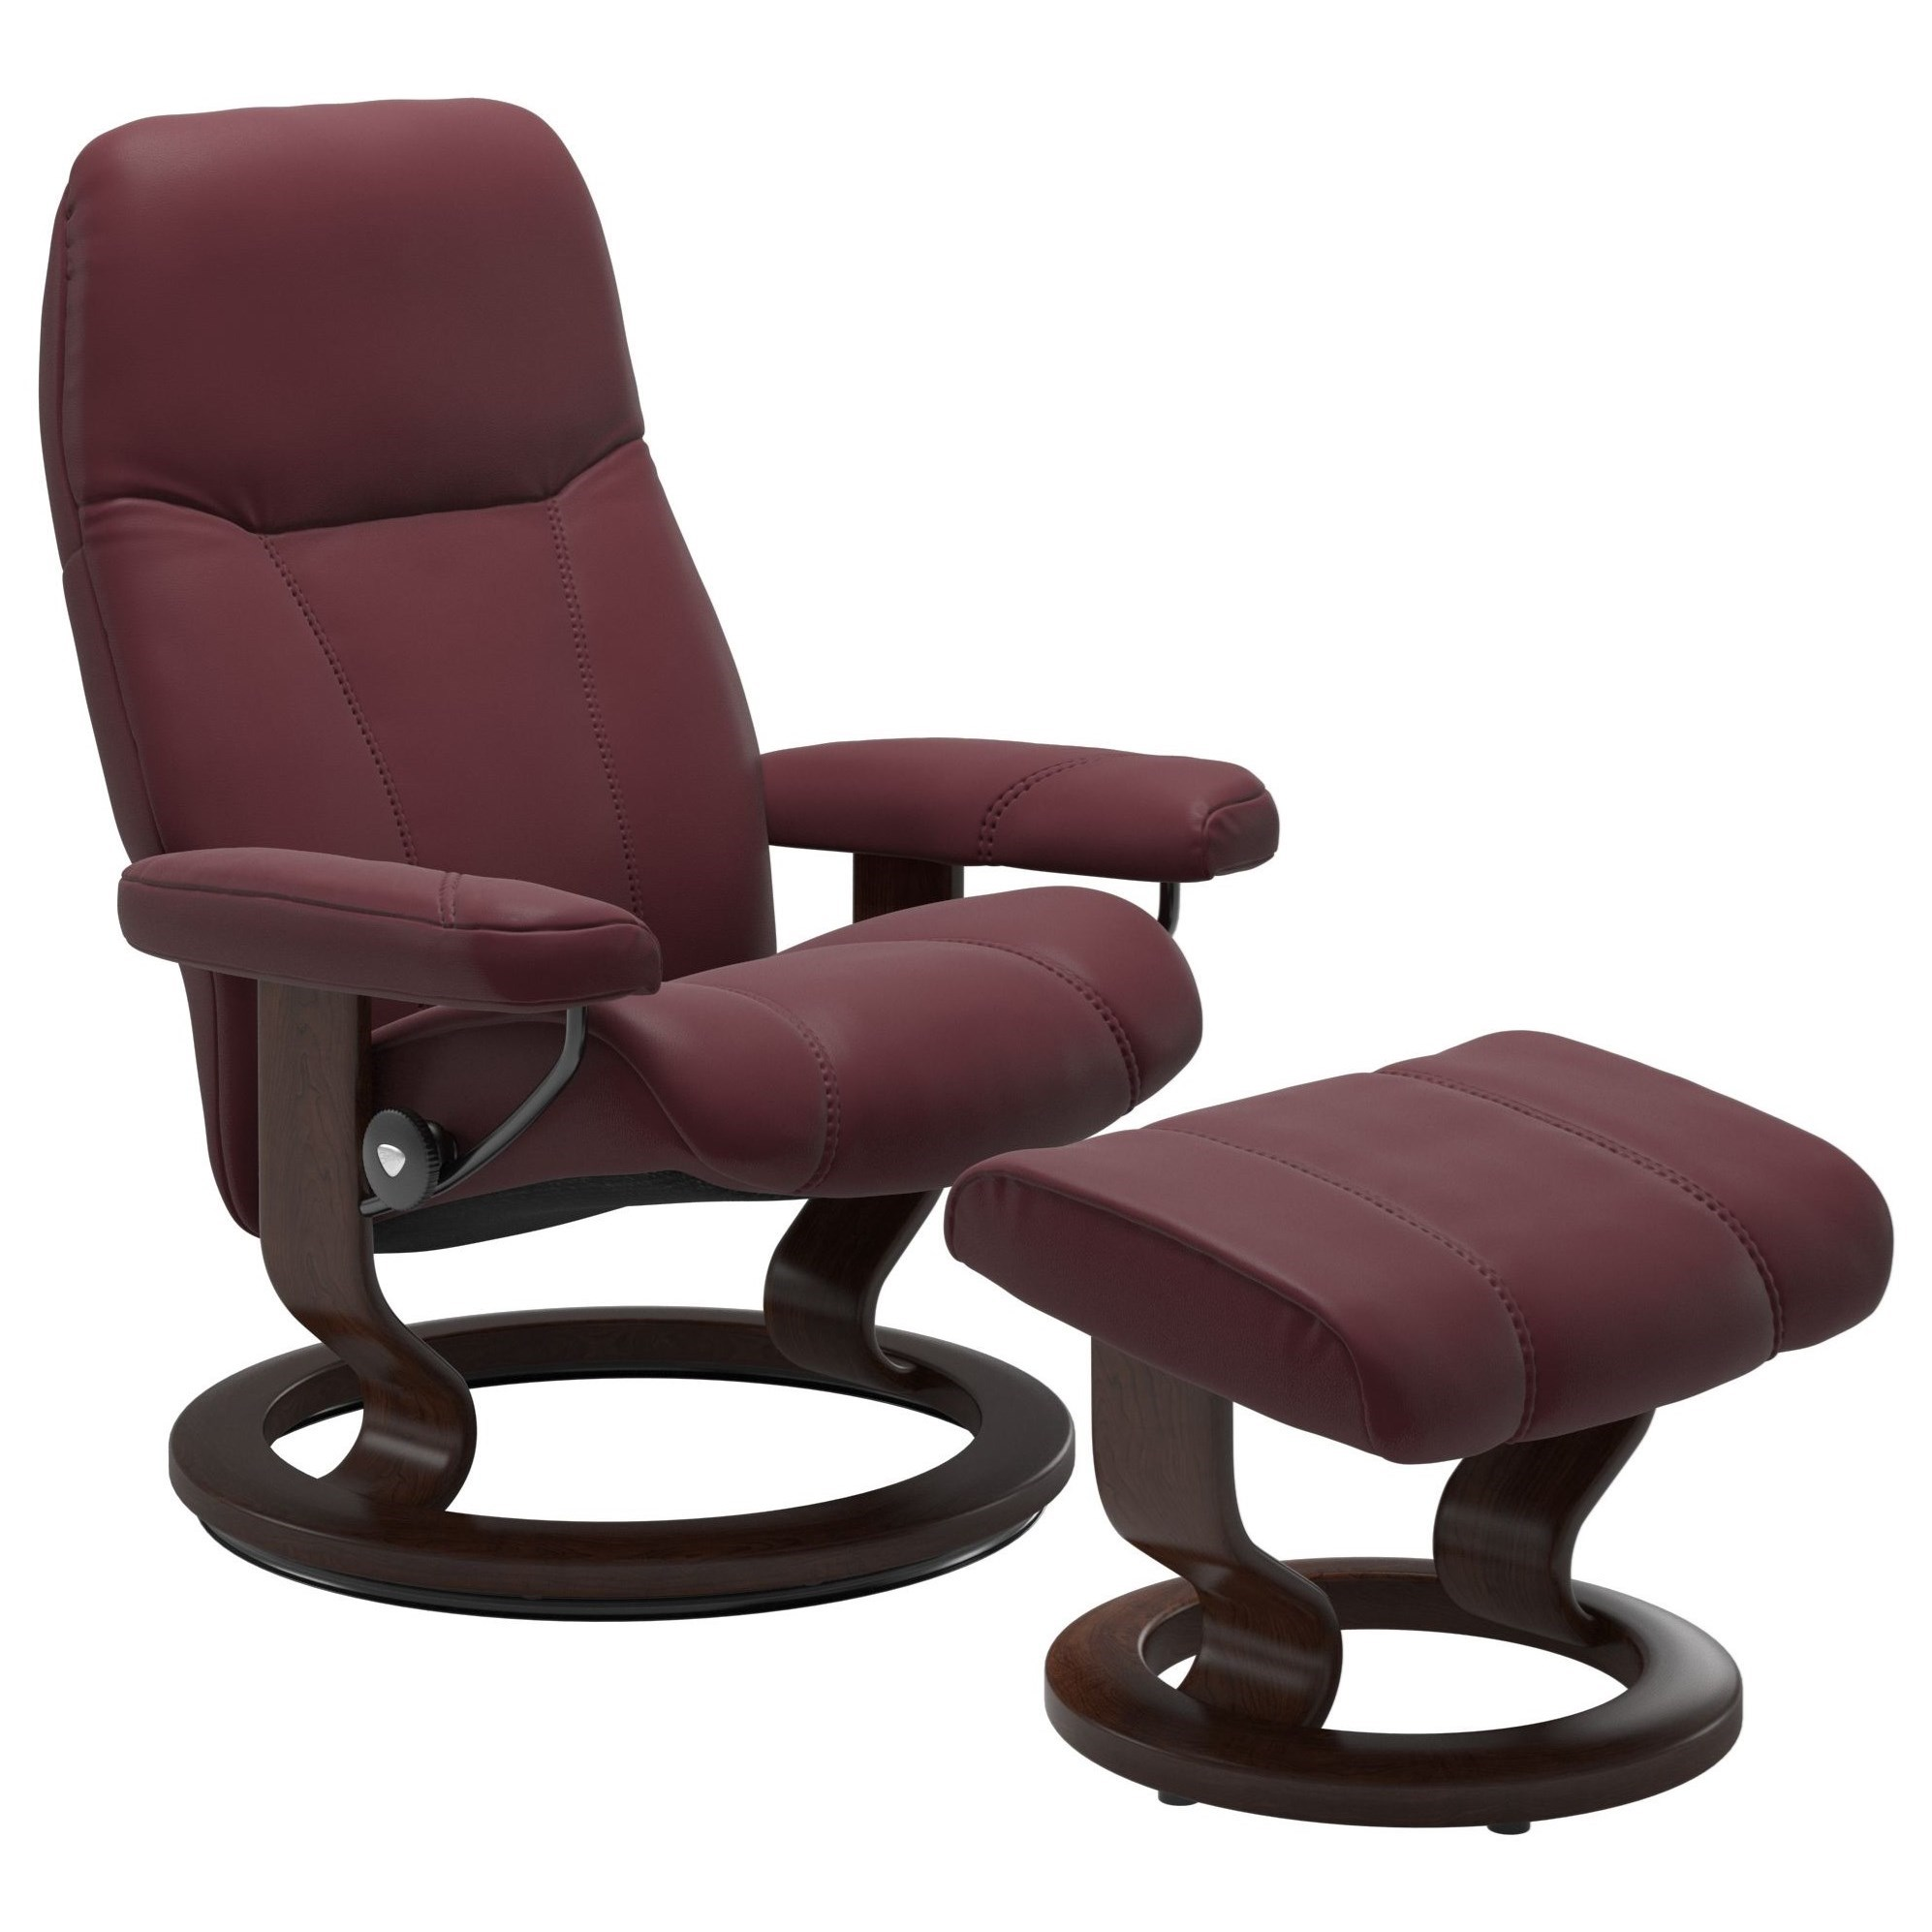 Consul Medium Chair & Ottoman with Classic Base by Stressless at HomeWorld Furniture